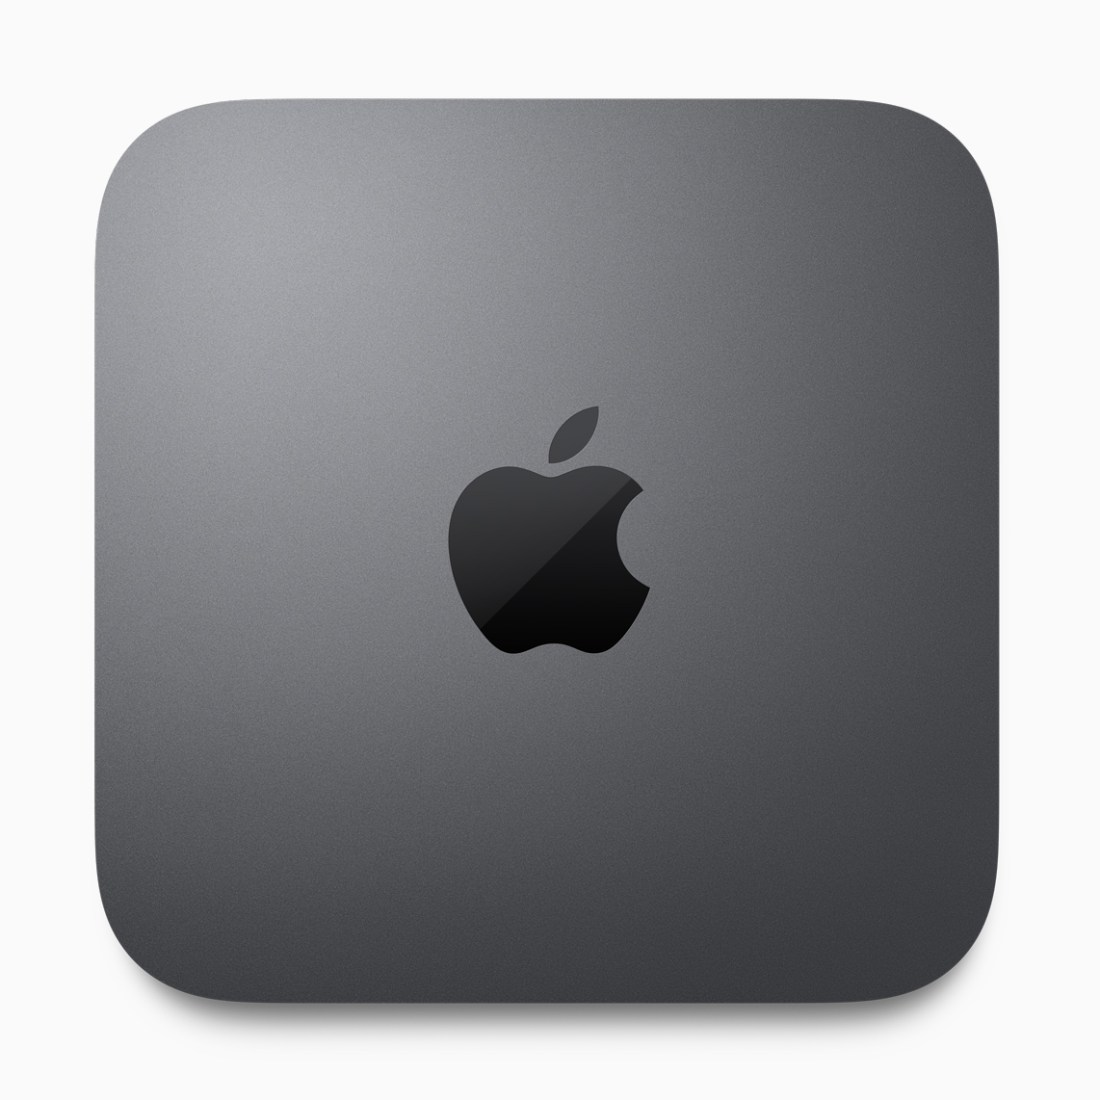 New Mac Mini (Late 2018) in Space Gray